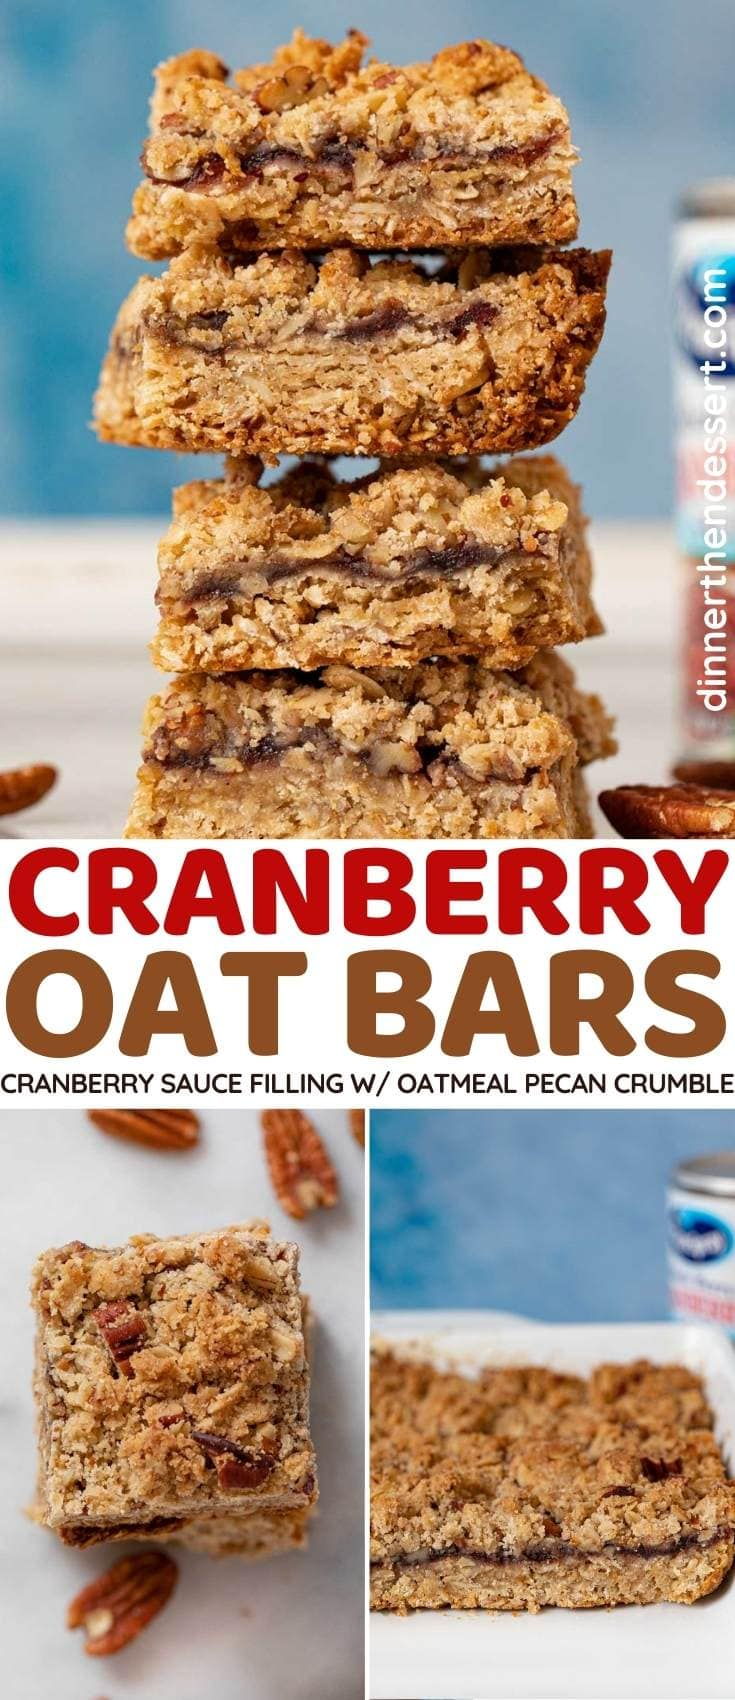 Cranberry Oat Bars collage